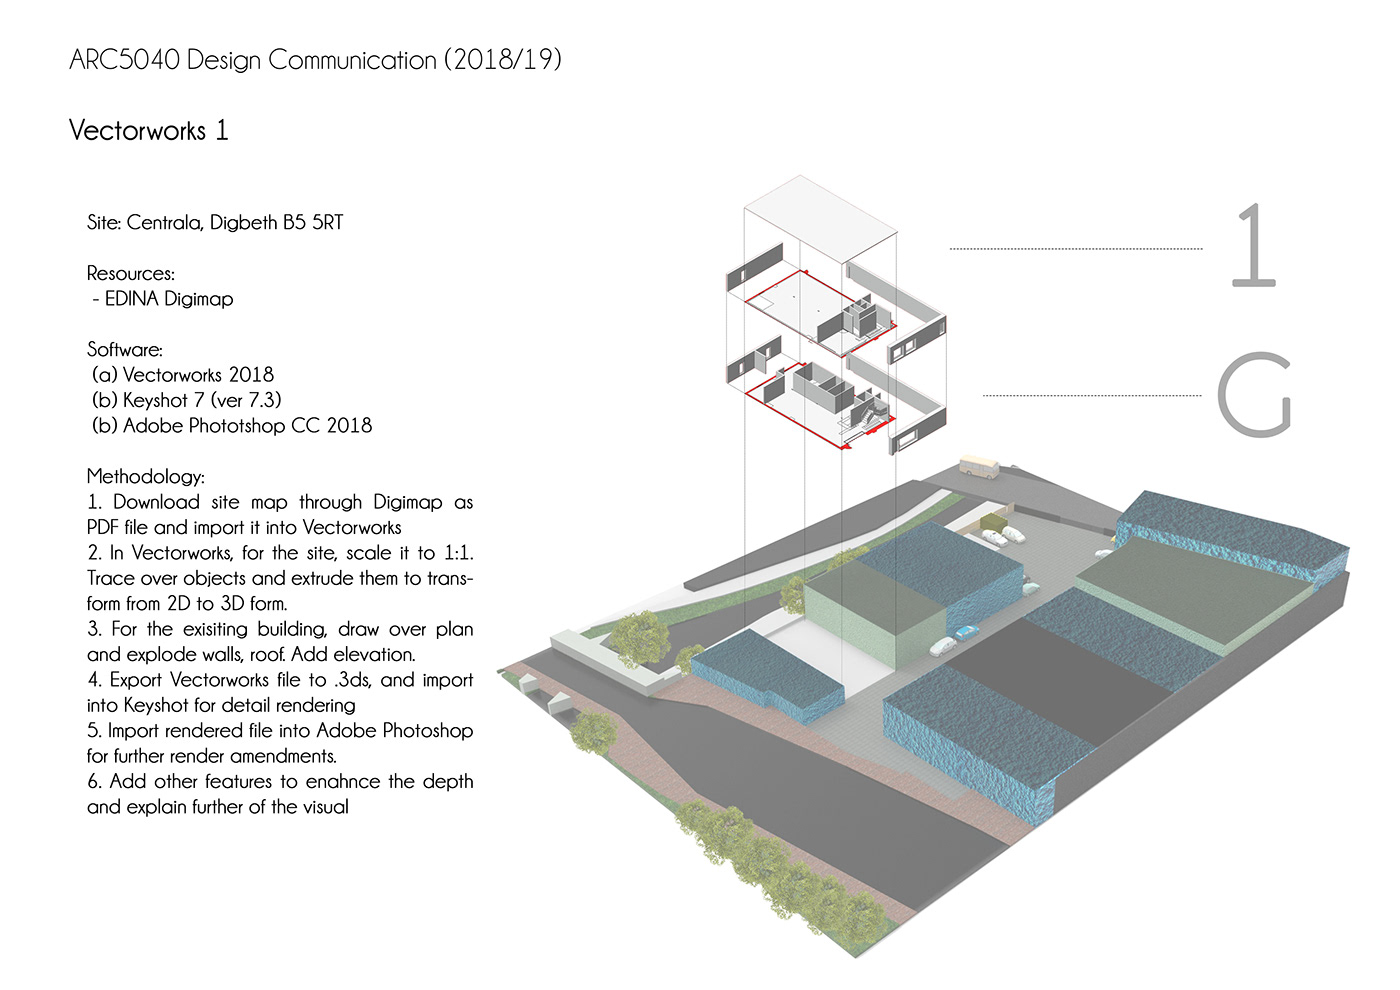 architecture Site Analysis ILLUSTRATION  3D Modelling Render visuals